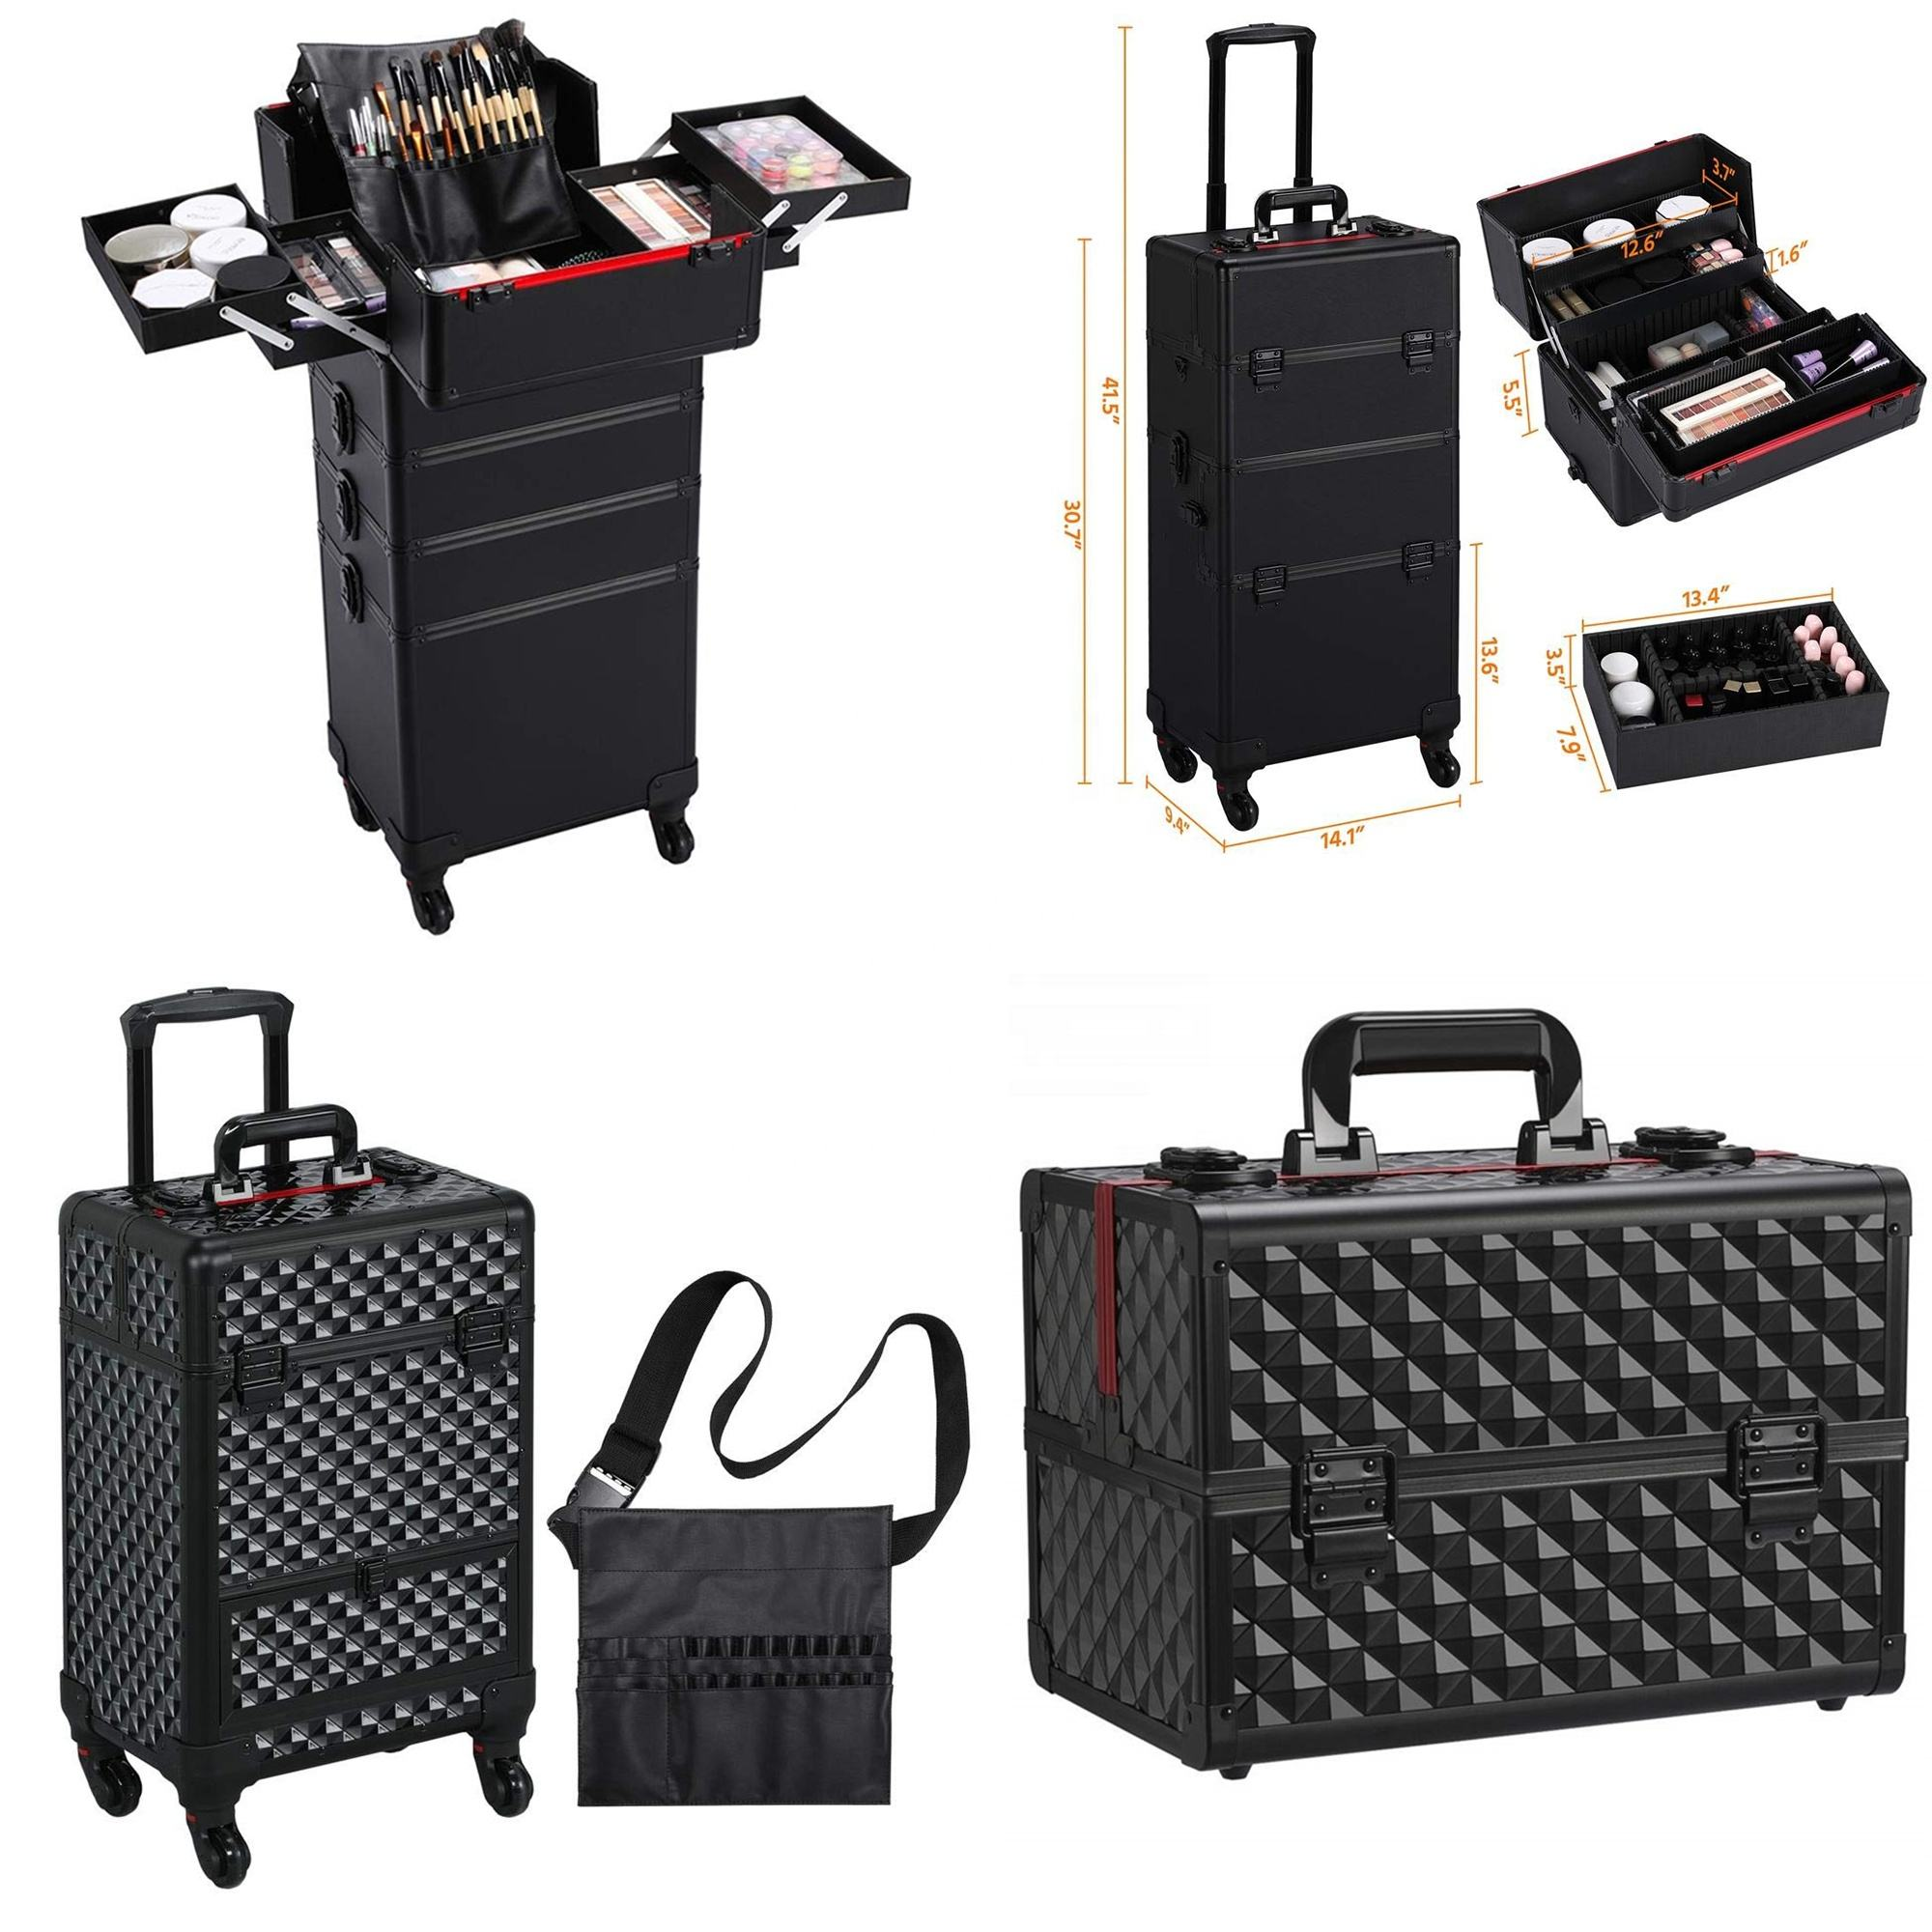 professional makeup trolley case suitcase trolley suitcase professional trolley make up cosmetic artist hairdresser case